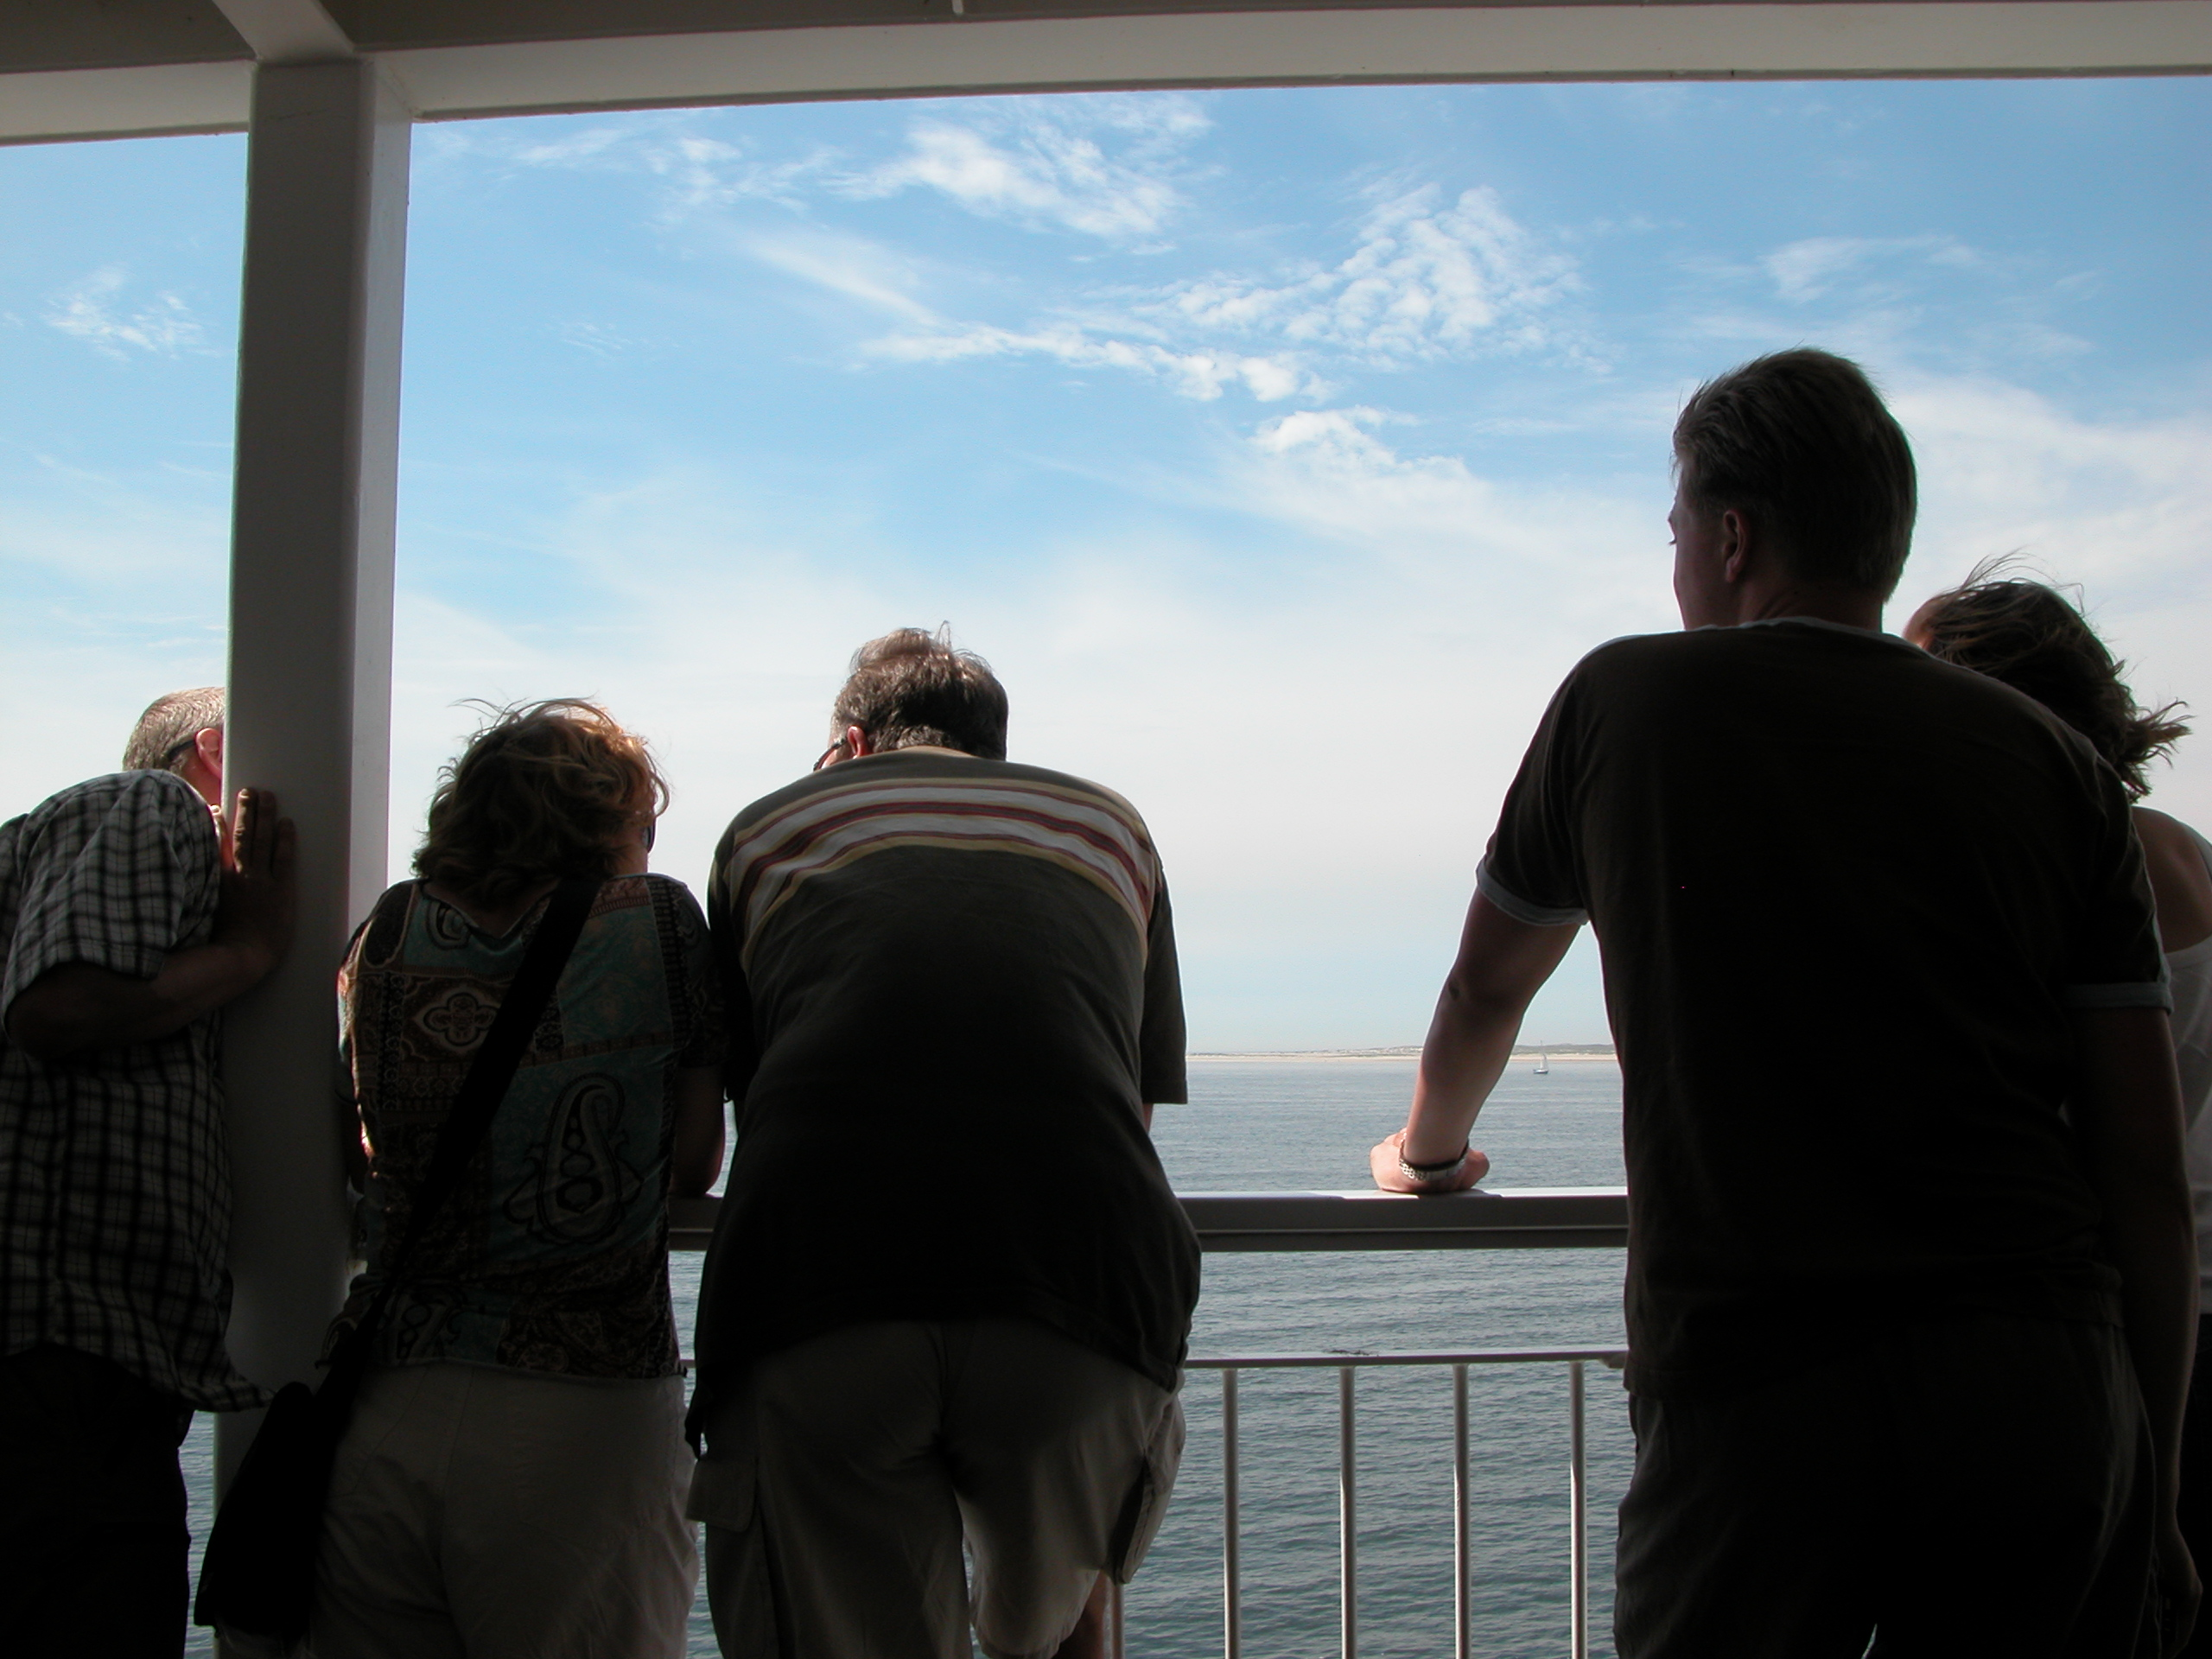 nature characters humanoids tourists on boat to texel backs silhouette silhouettes